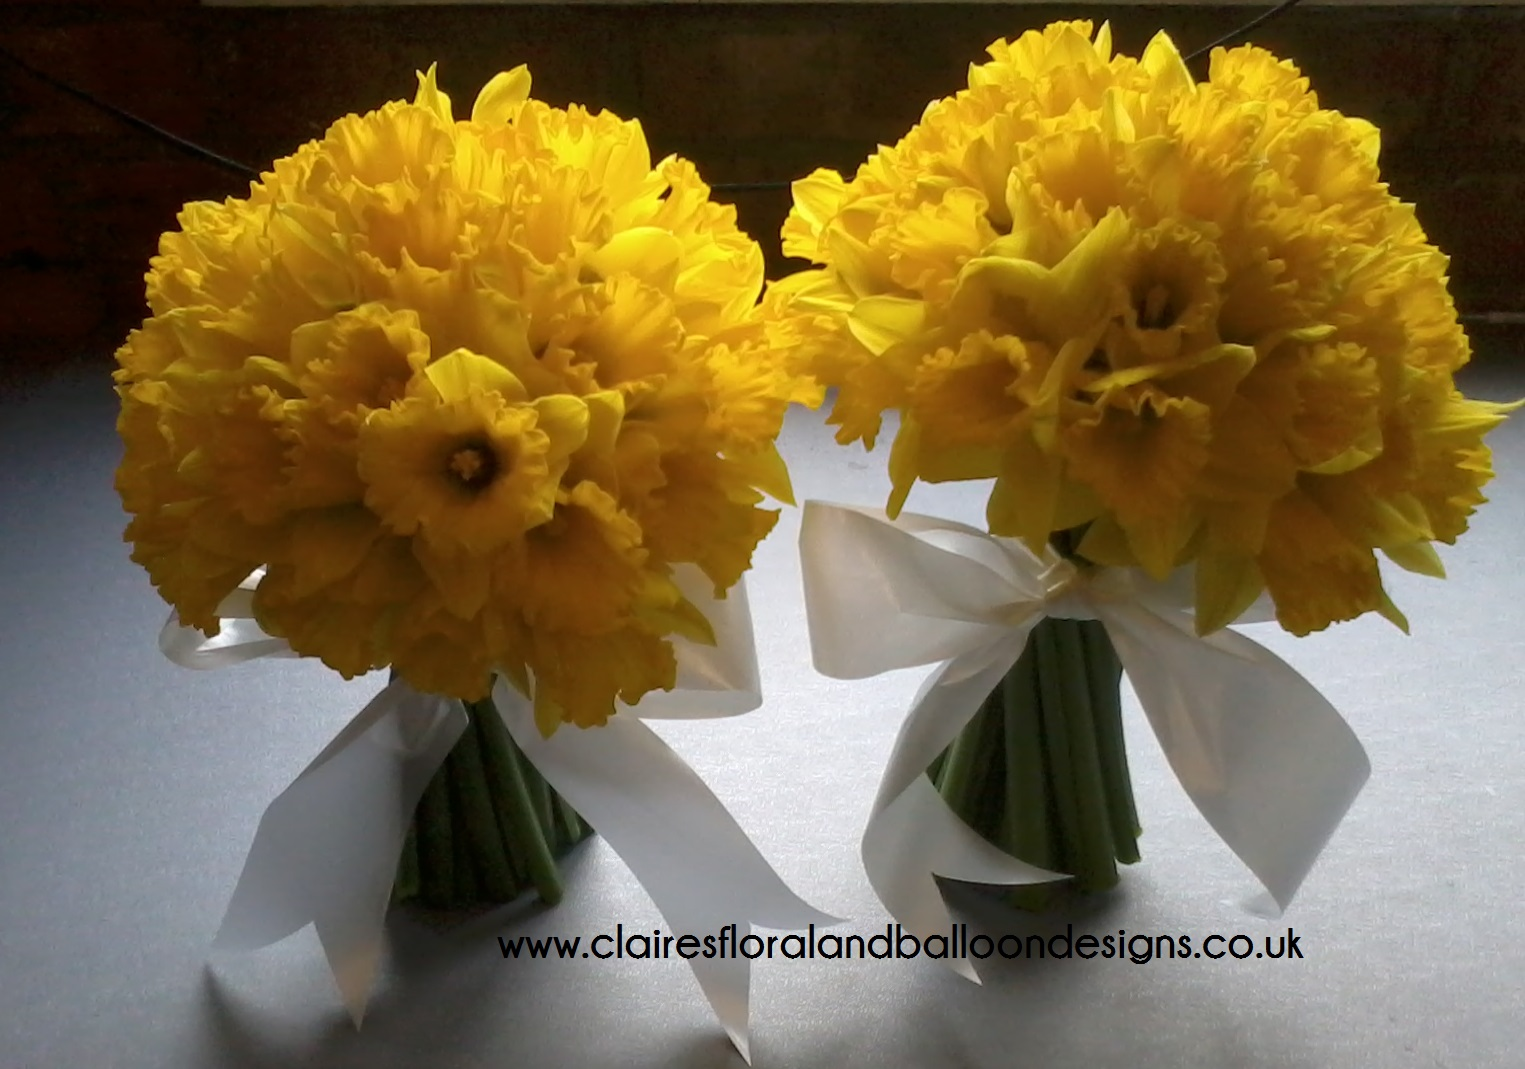 Fabulous floral designs norwich florist balloon designs for daffodil bouquets as funeral tributes izmirmasajfo